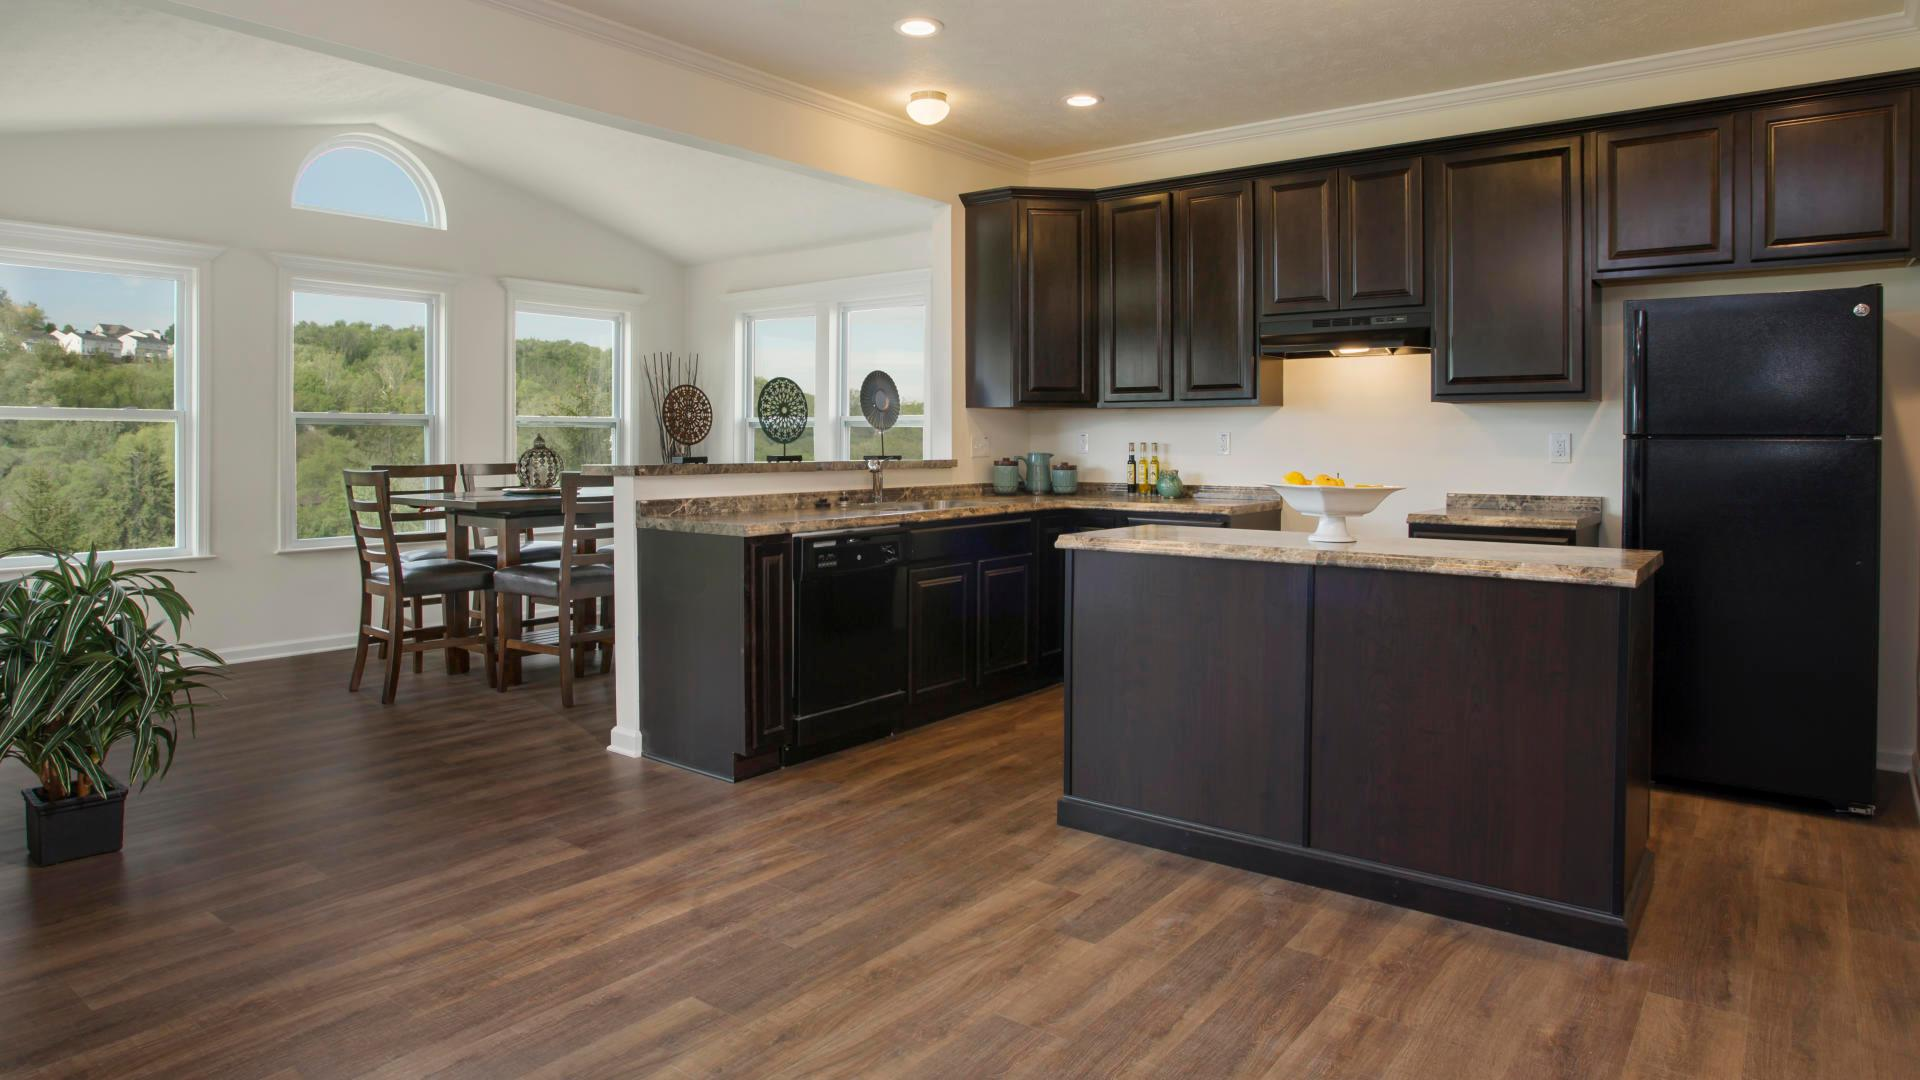 Kitchen featured in the Rockford By Maronda Homes in Columbus, OH